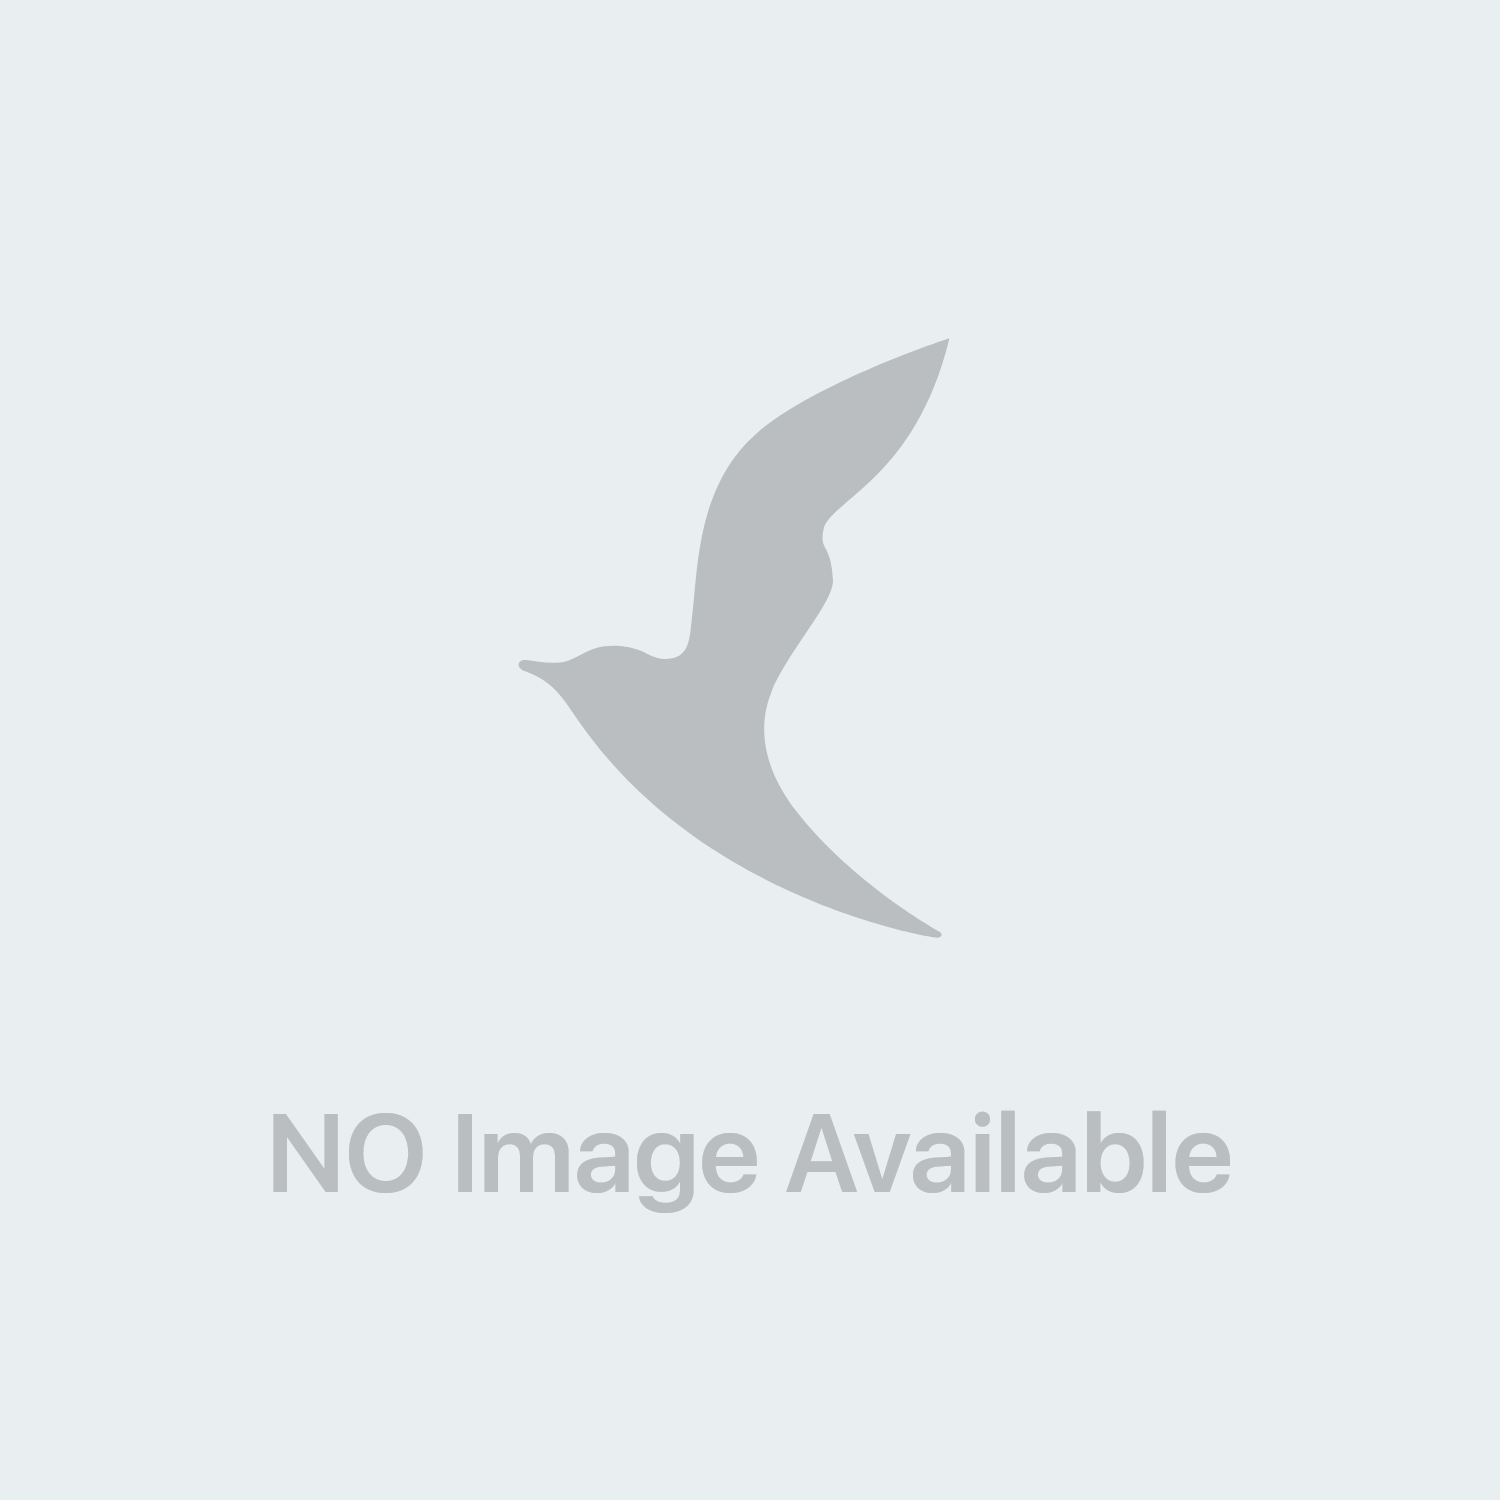 Buscopan Compositum 10mg + 800mg 6 Supposte